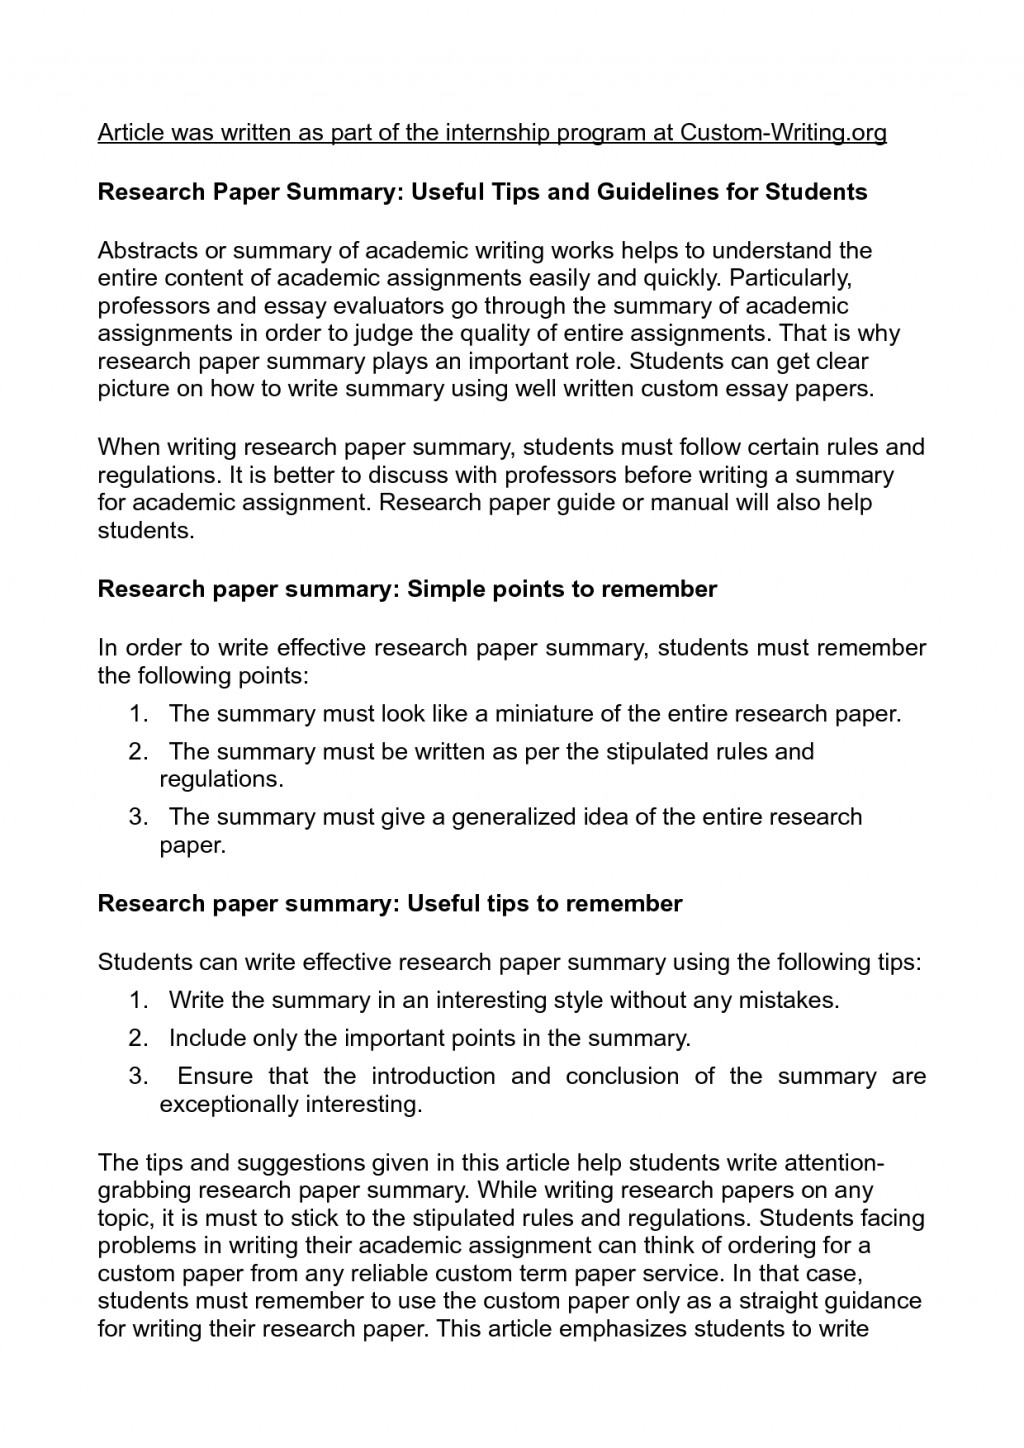 006 Essay Example Adhd Research Papers Brain Scan College About Writing Paper Summary 5 Impressive Conclusion Examples Thesis Statement Large